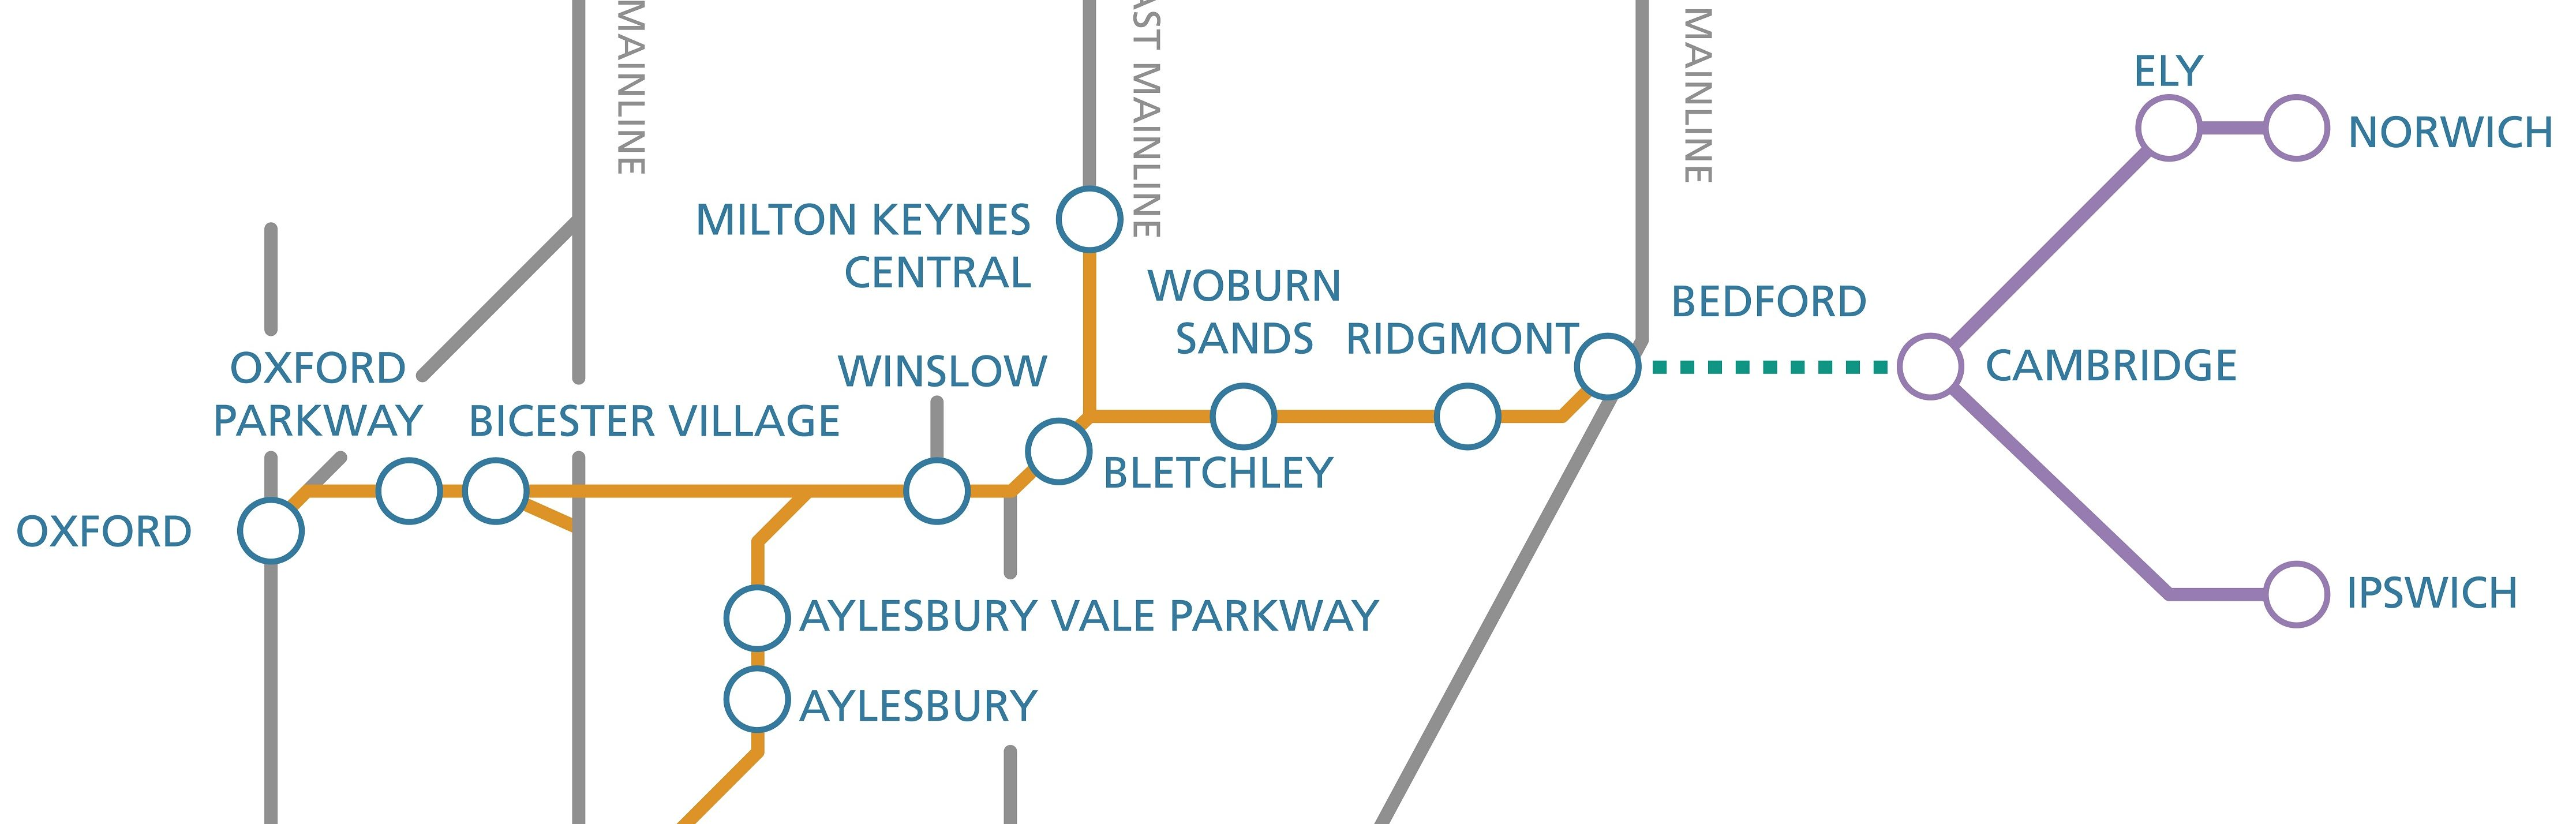 Scheme: Latest information from the East West Railway Company